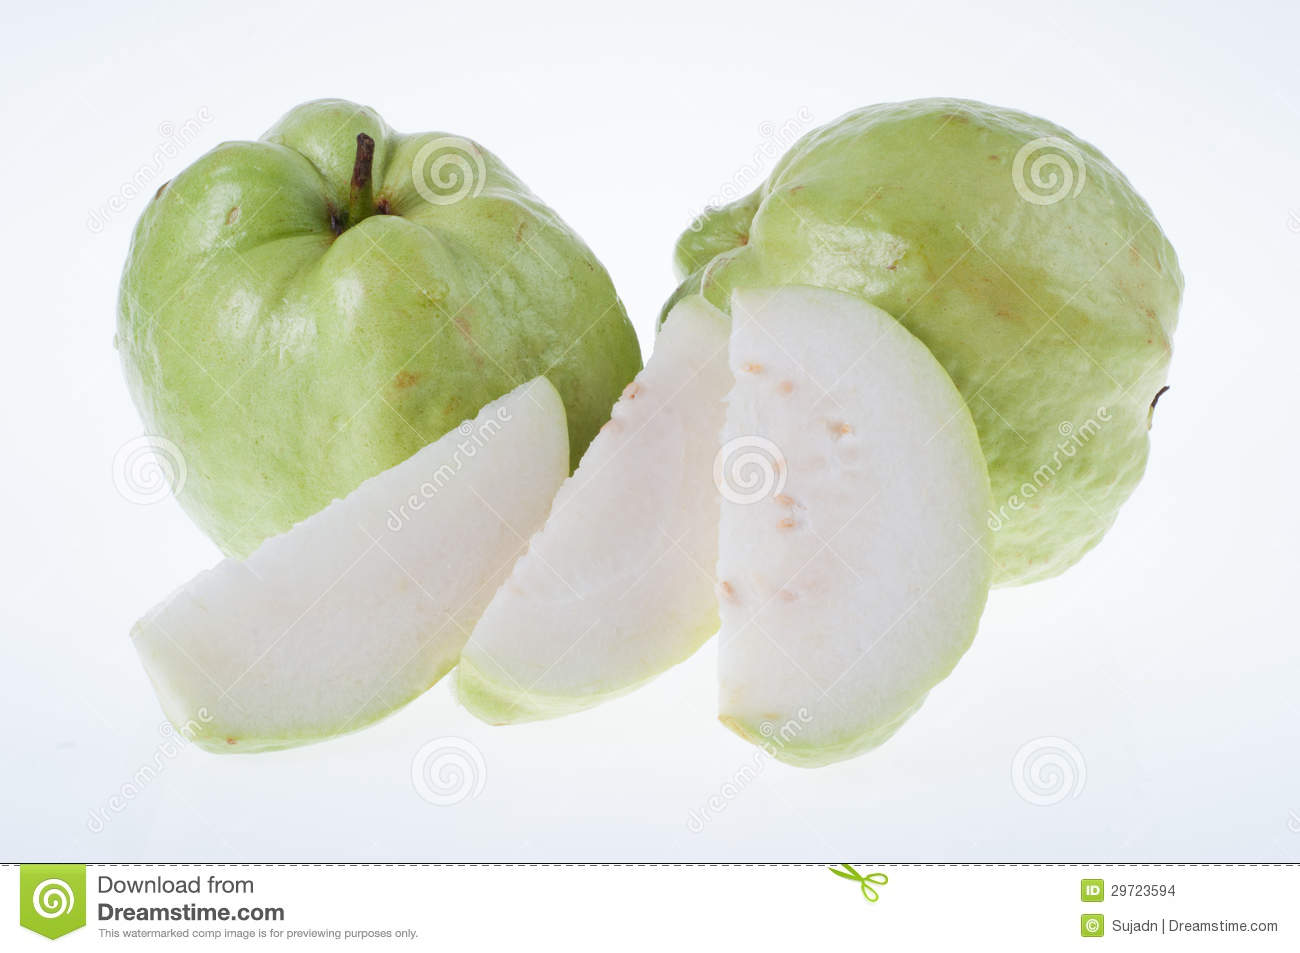 how to eat white guava